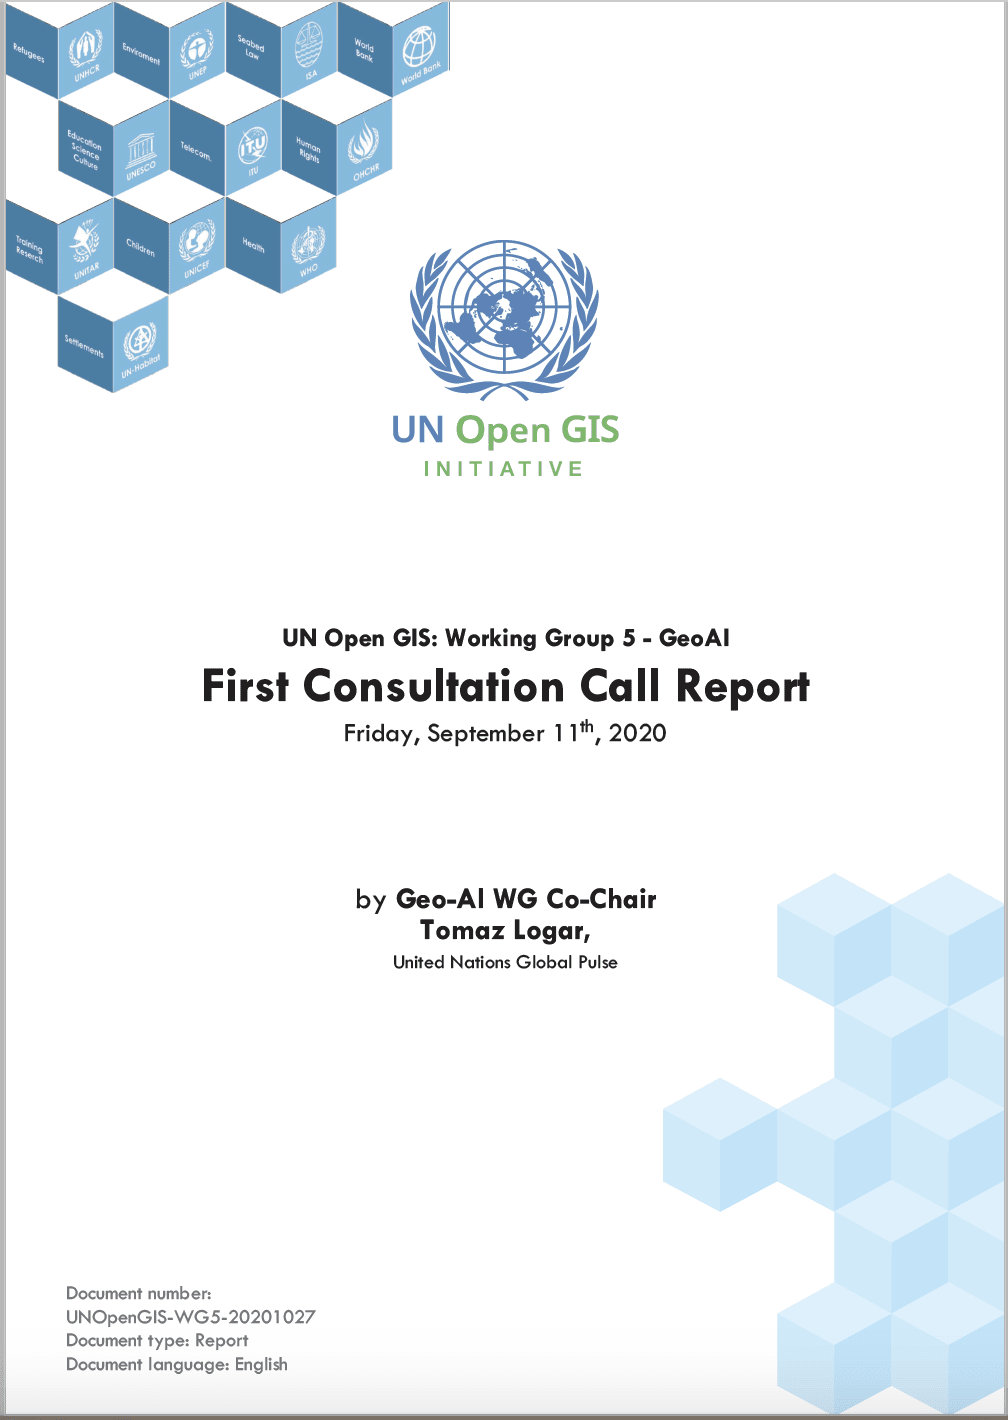 UN Open GIS: Geo-AI Working Group. First Consultation Call Report. 5